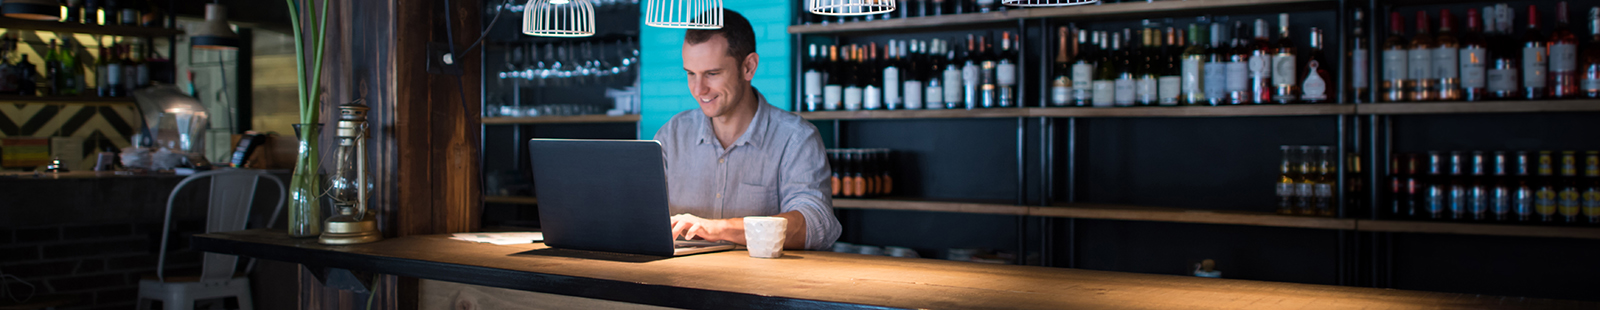 Happy business man working at a restaurant using a laptop computer and doing the books